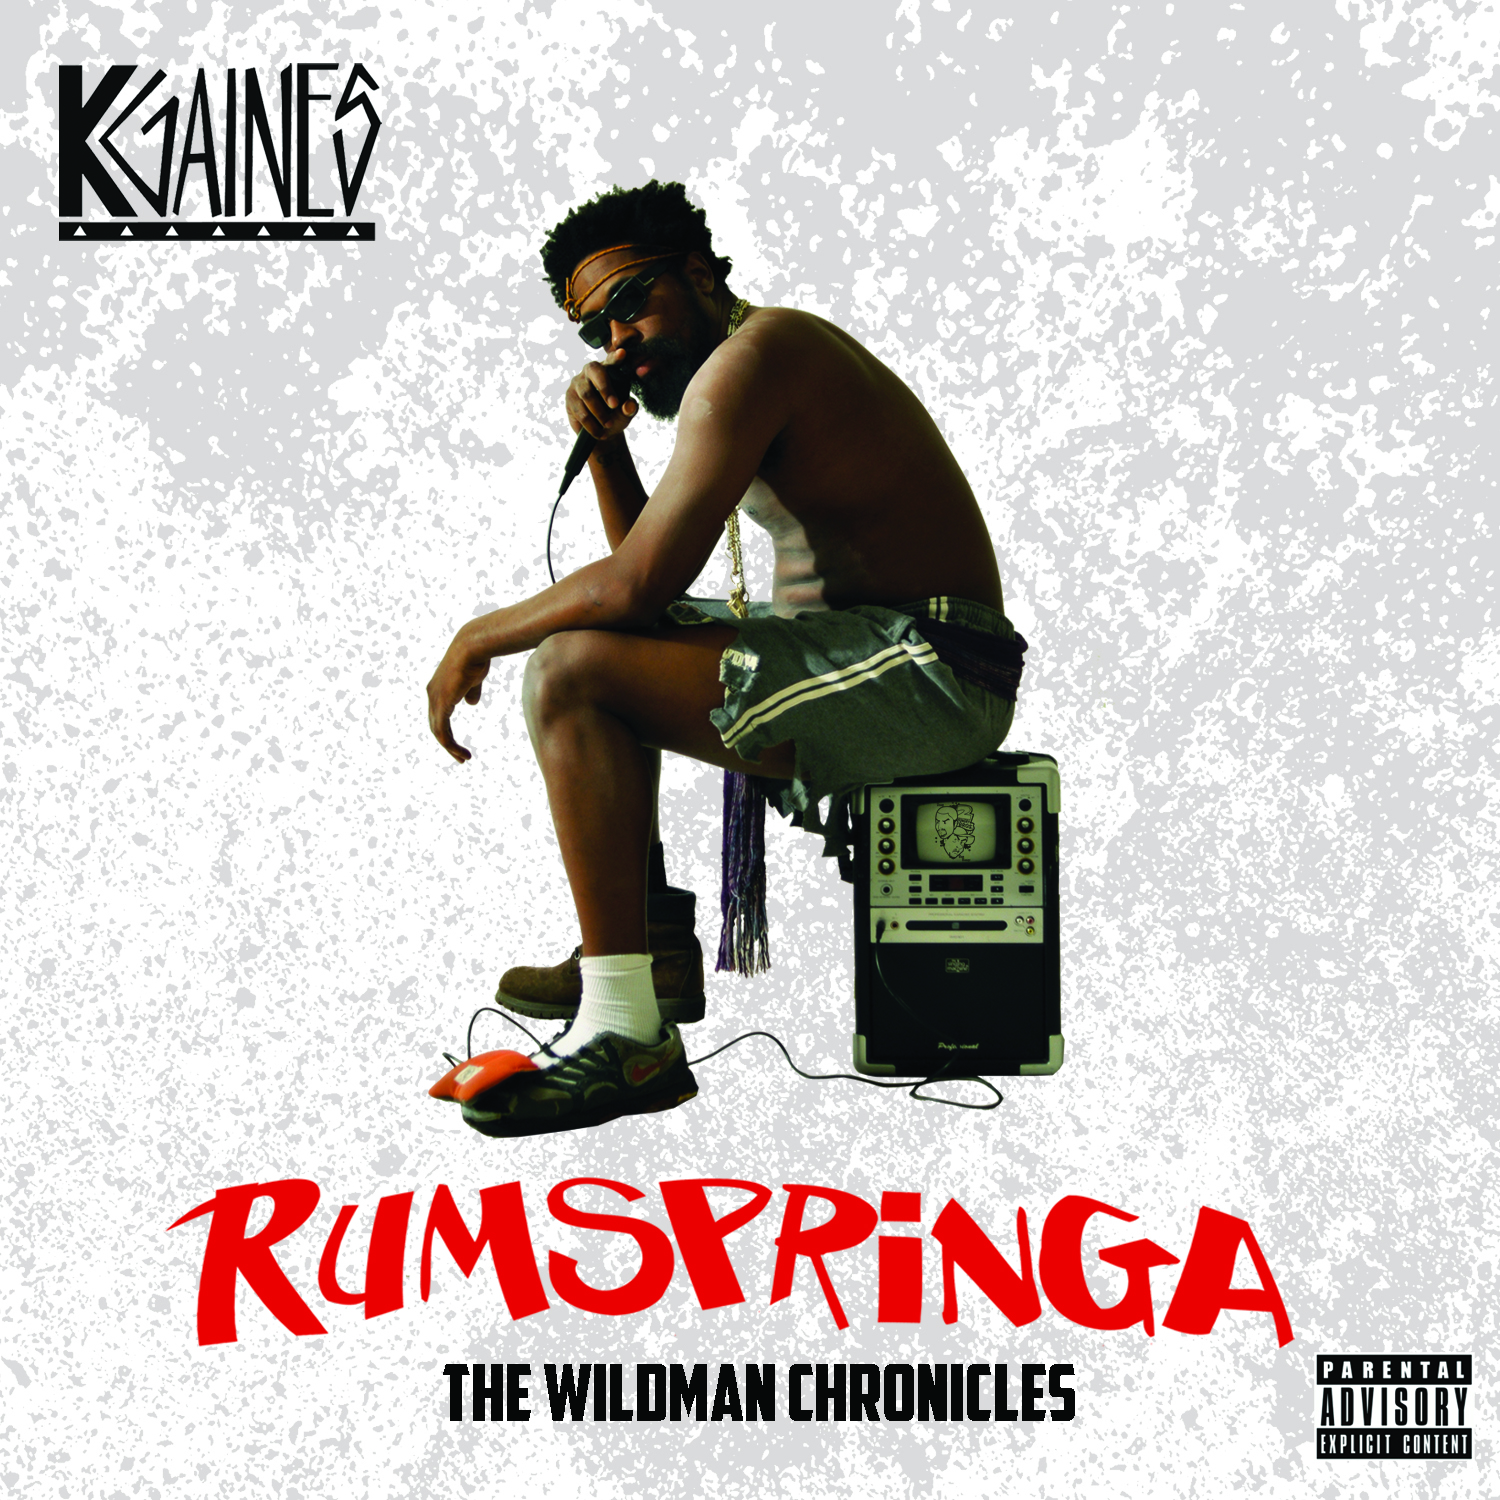 Rumspringa - The Wildman Chronicles